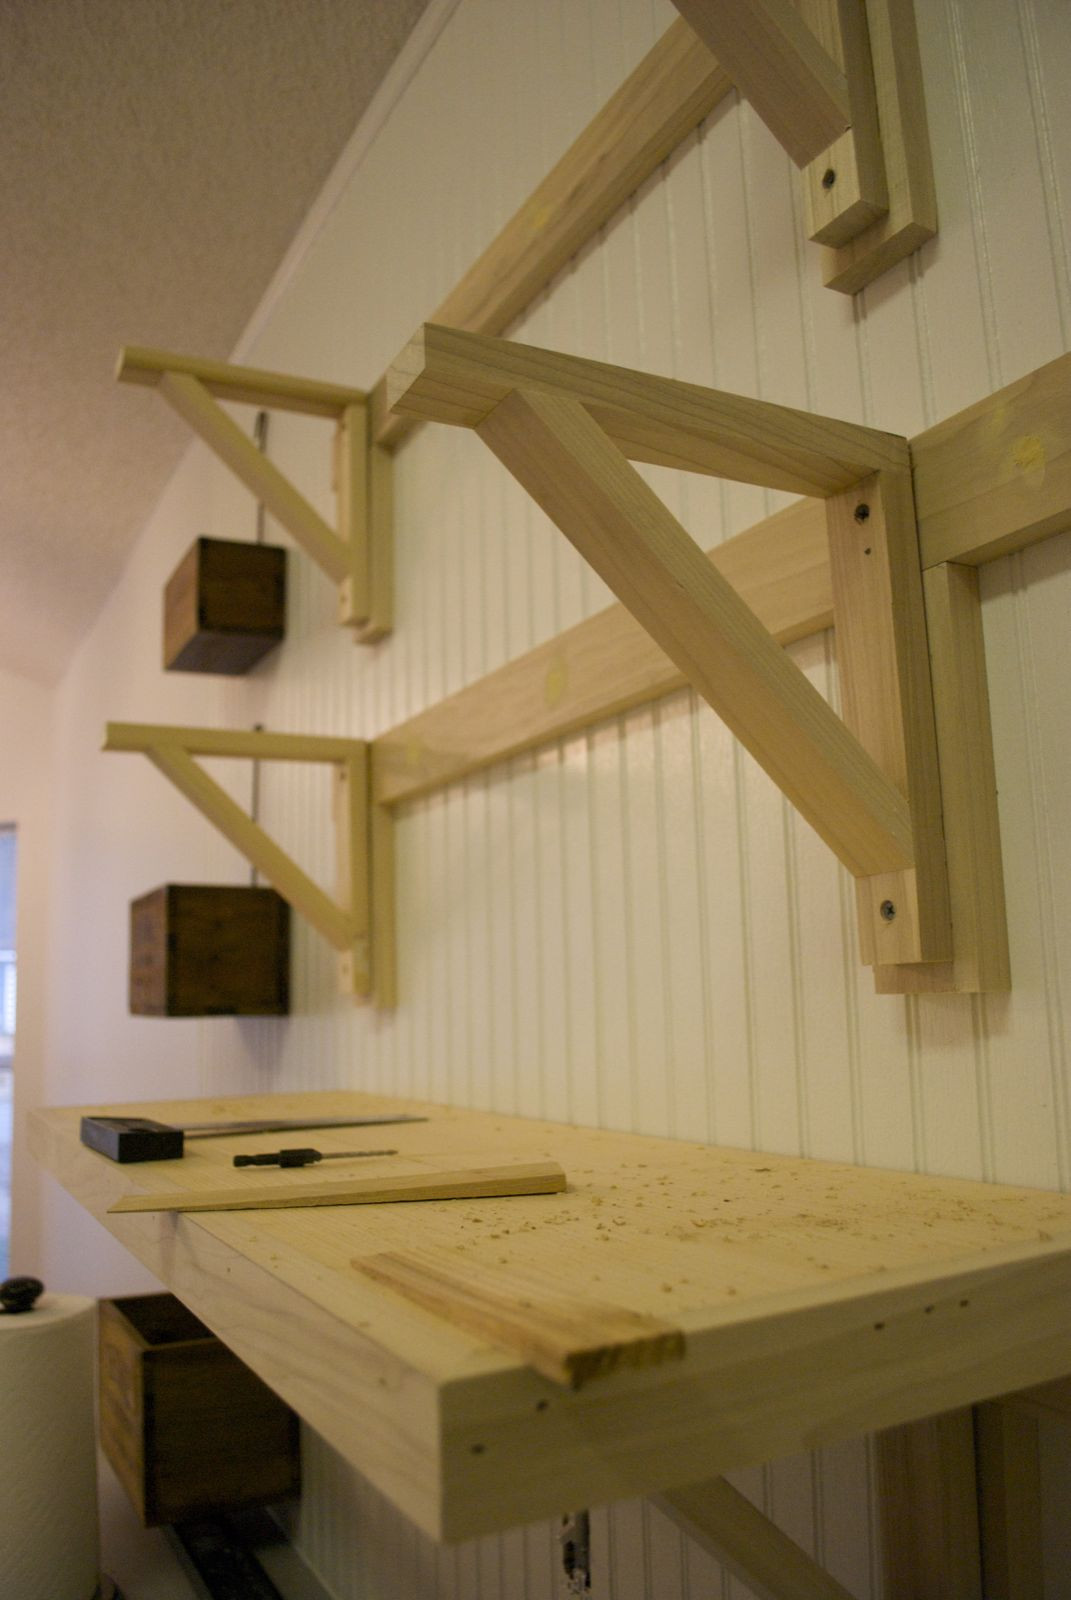 Best ideas about DIY Wood Shelf Bracket . Save or Pin Shelf brackets Shelves and DIY and crafts on Pinterest Now.